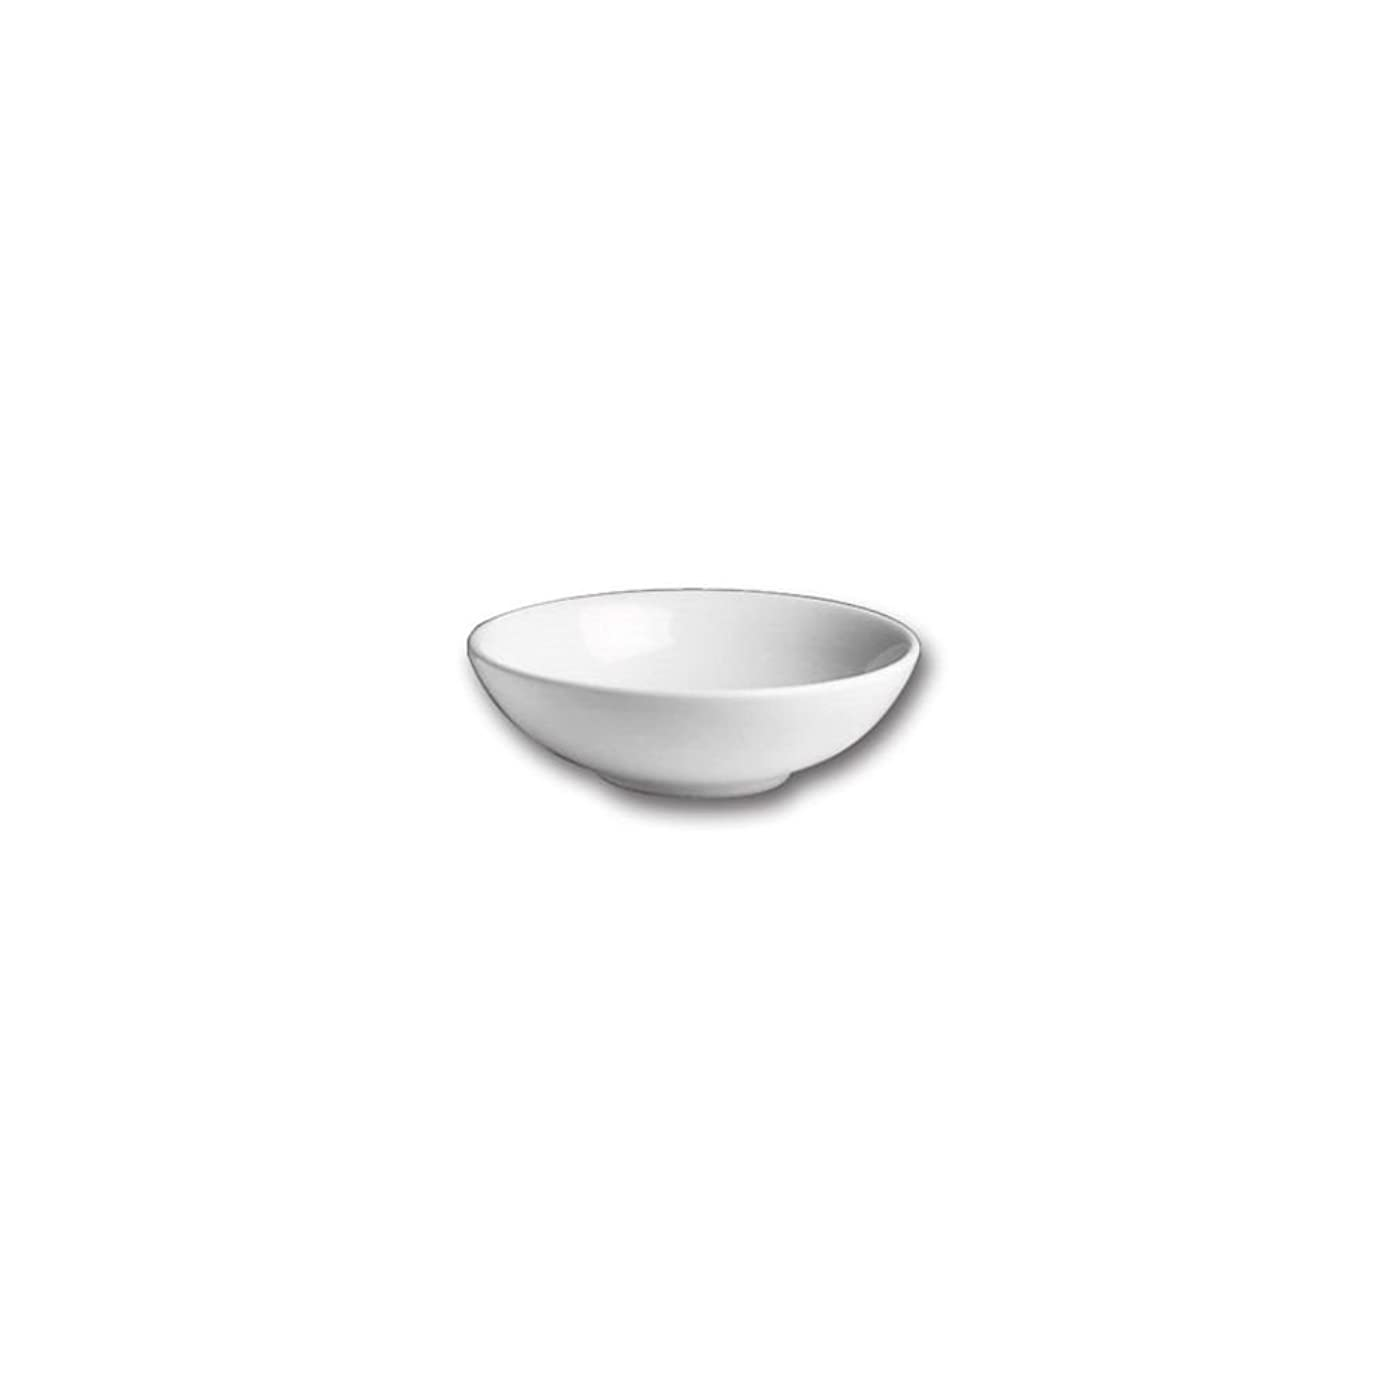 Hall China 12820AWHA White 4 Pint Salad/Pasta Bowl - 3 / CS